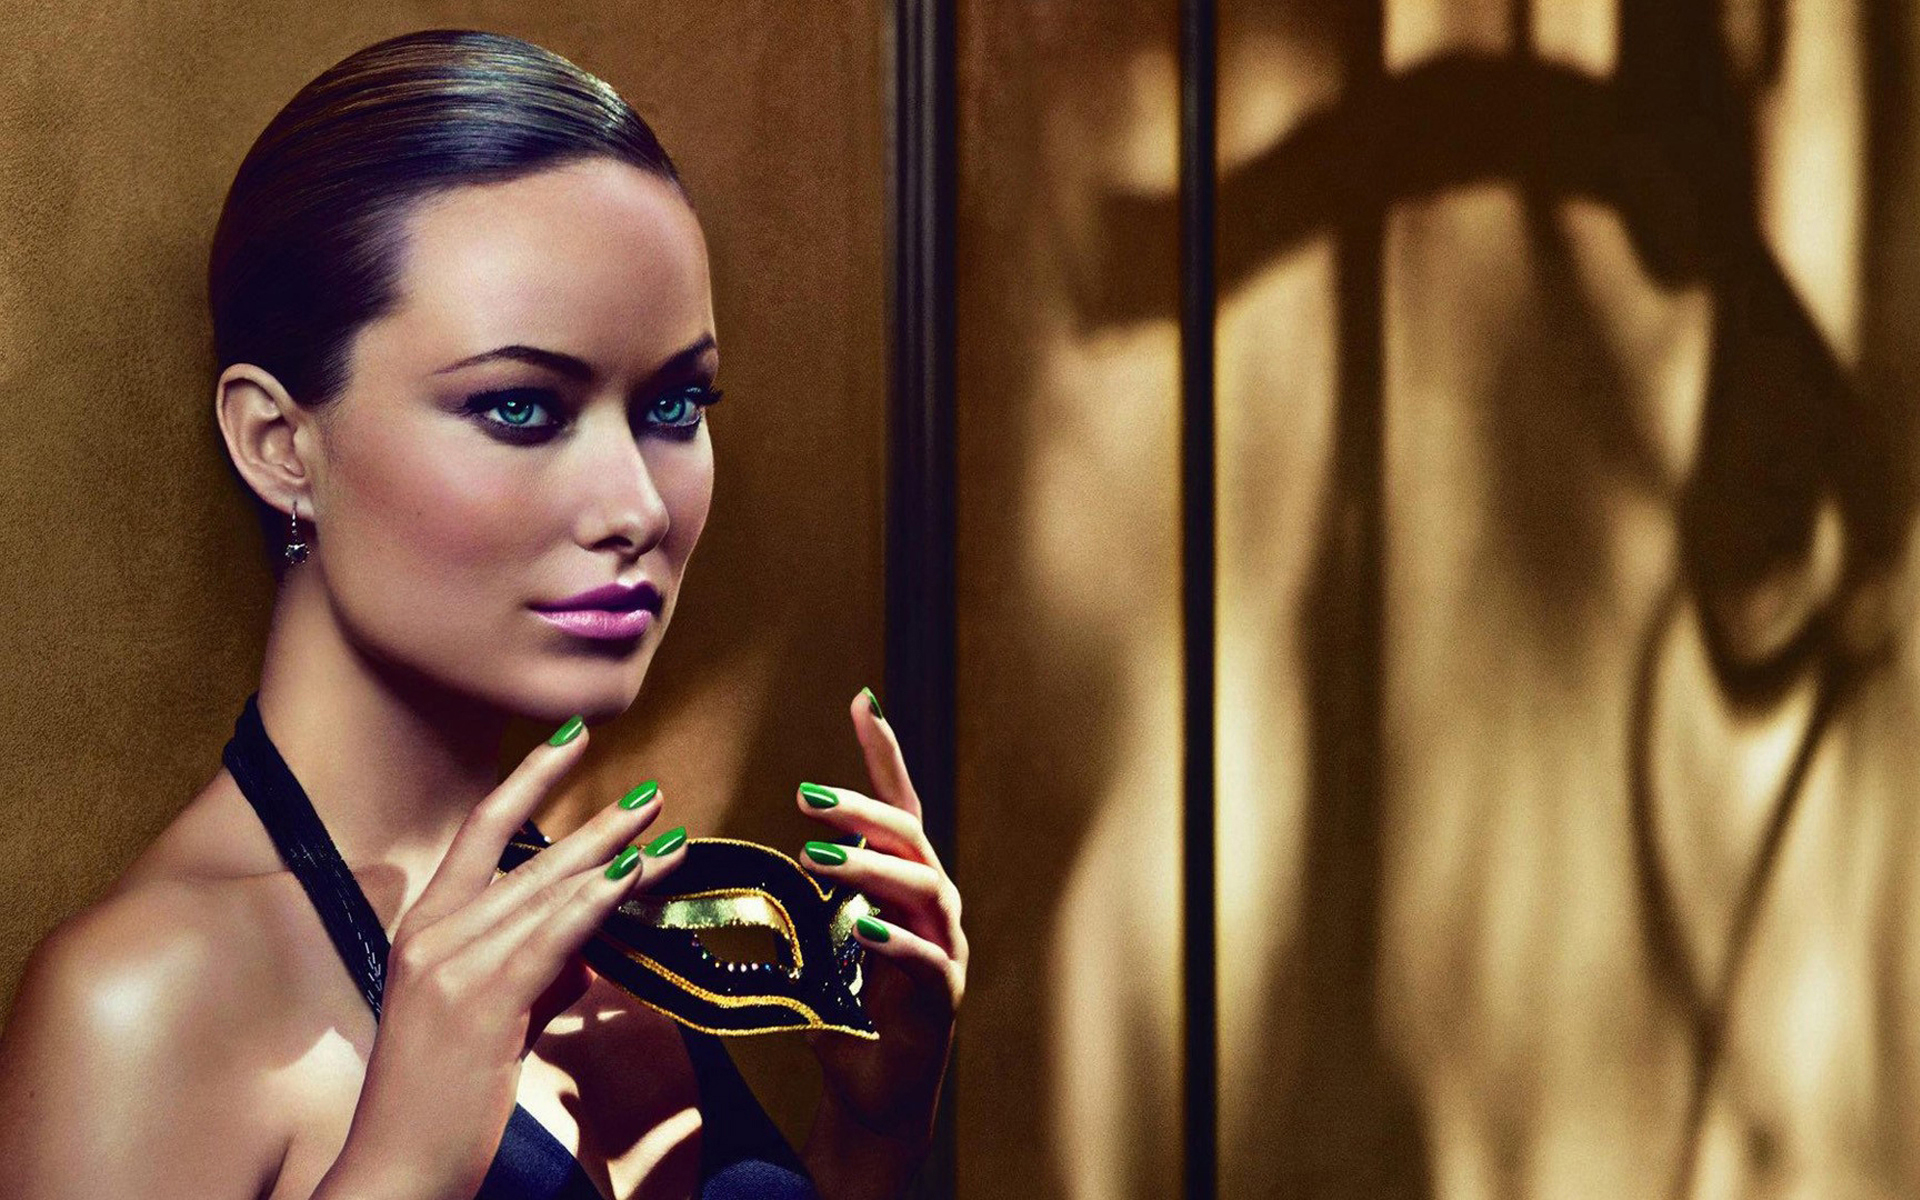 olivia wilde face photo widescreen background desktop cute look